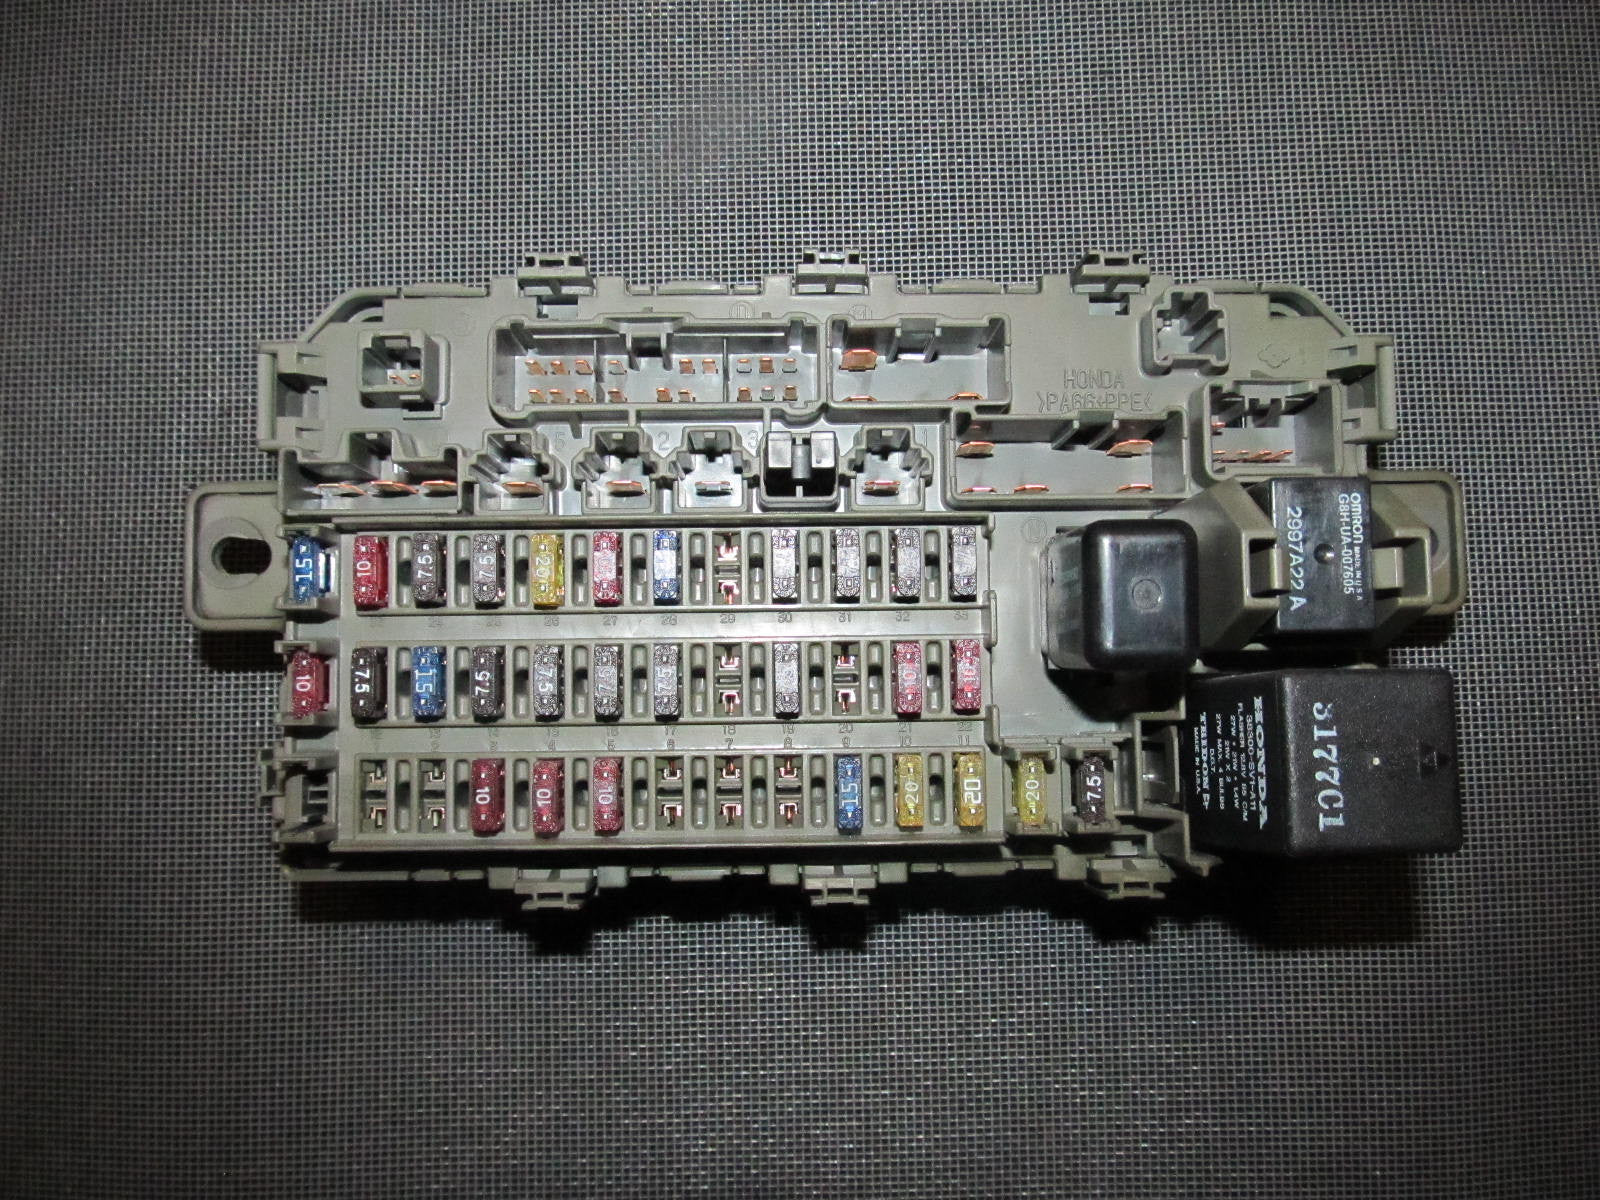 IMG_9687_e40c3657 cee5 4226 9211 04a229811583?v=1405129915 96 97 98 99 00 honda civic oem interior fuse box with relay 99 civic fuse box layout at eliteediting.co